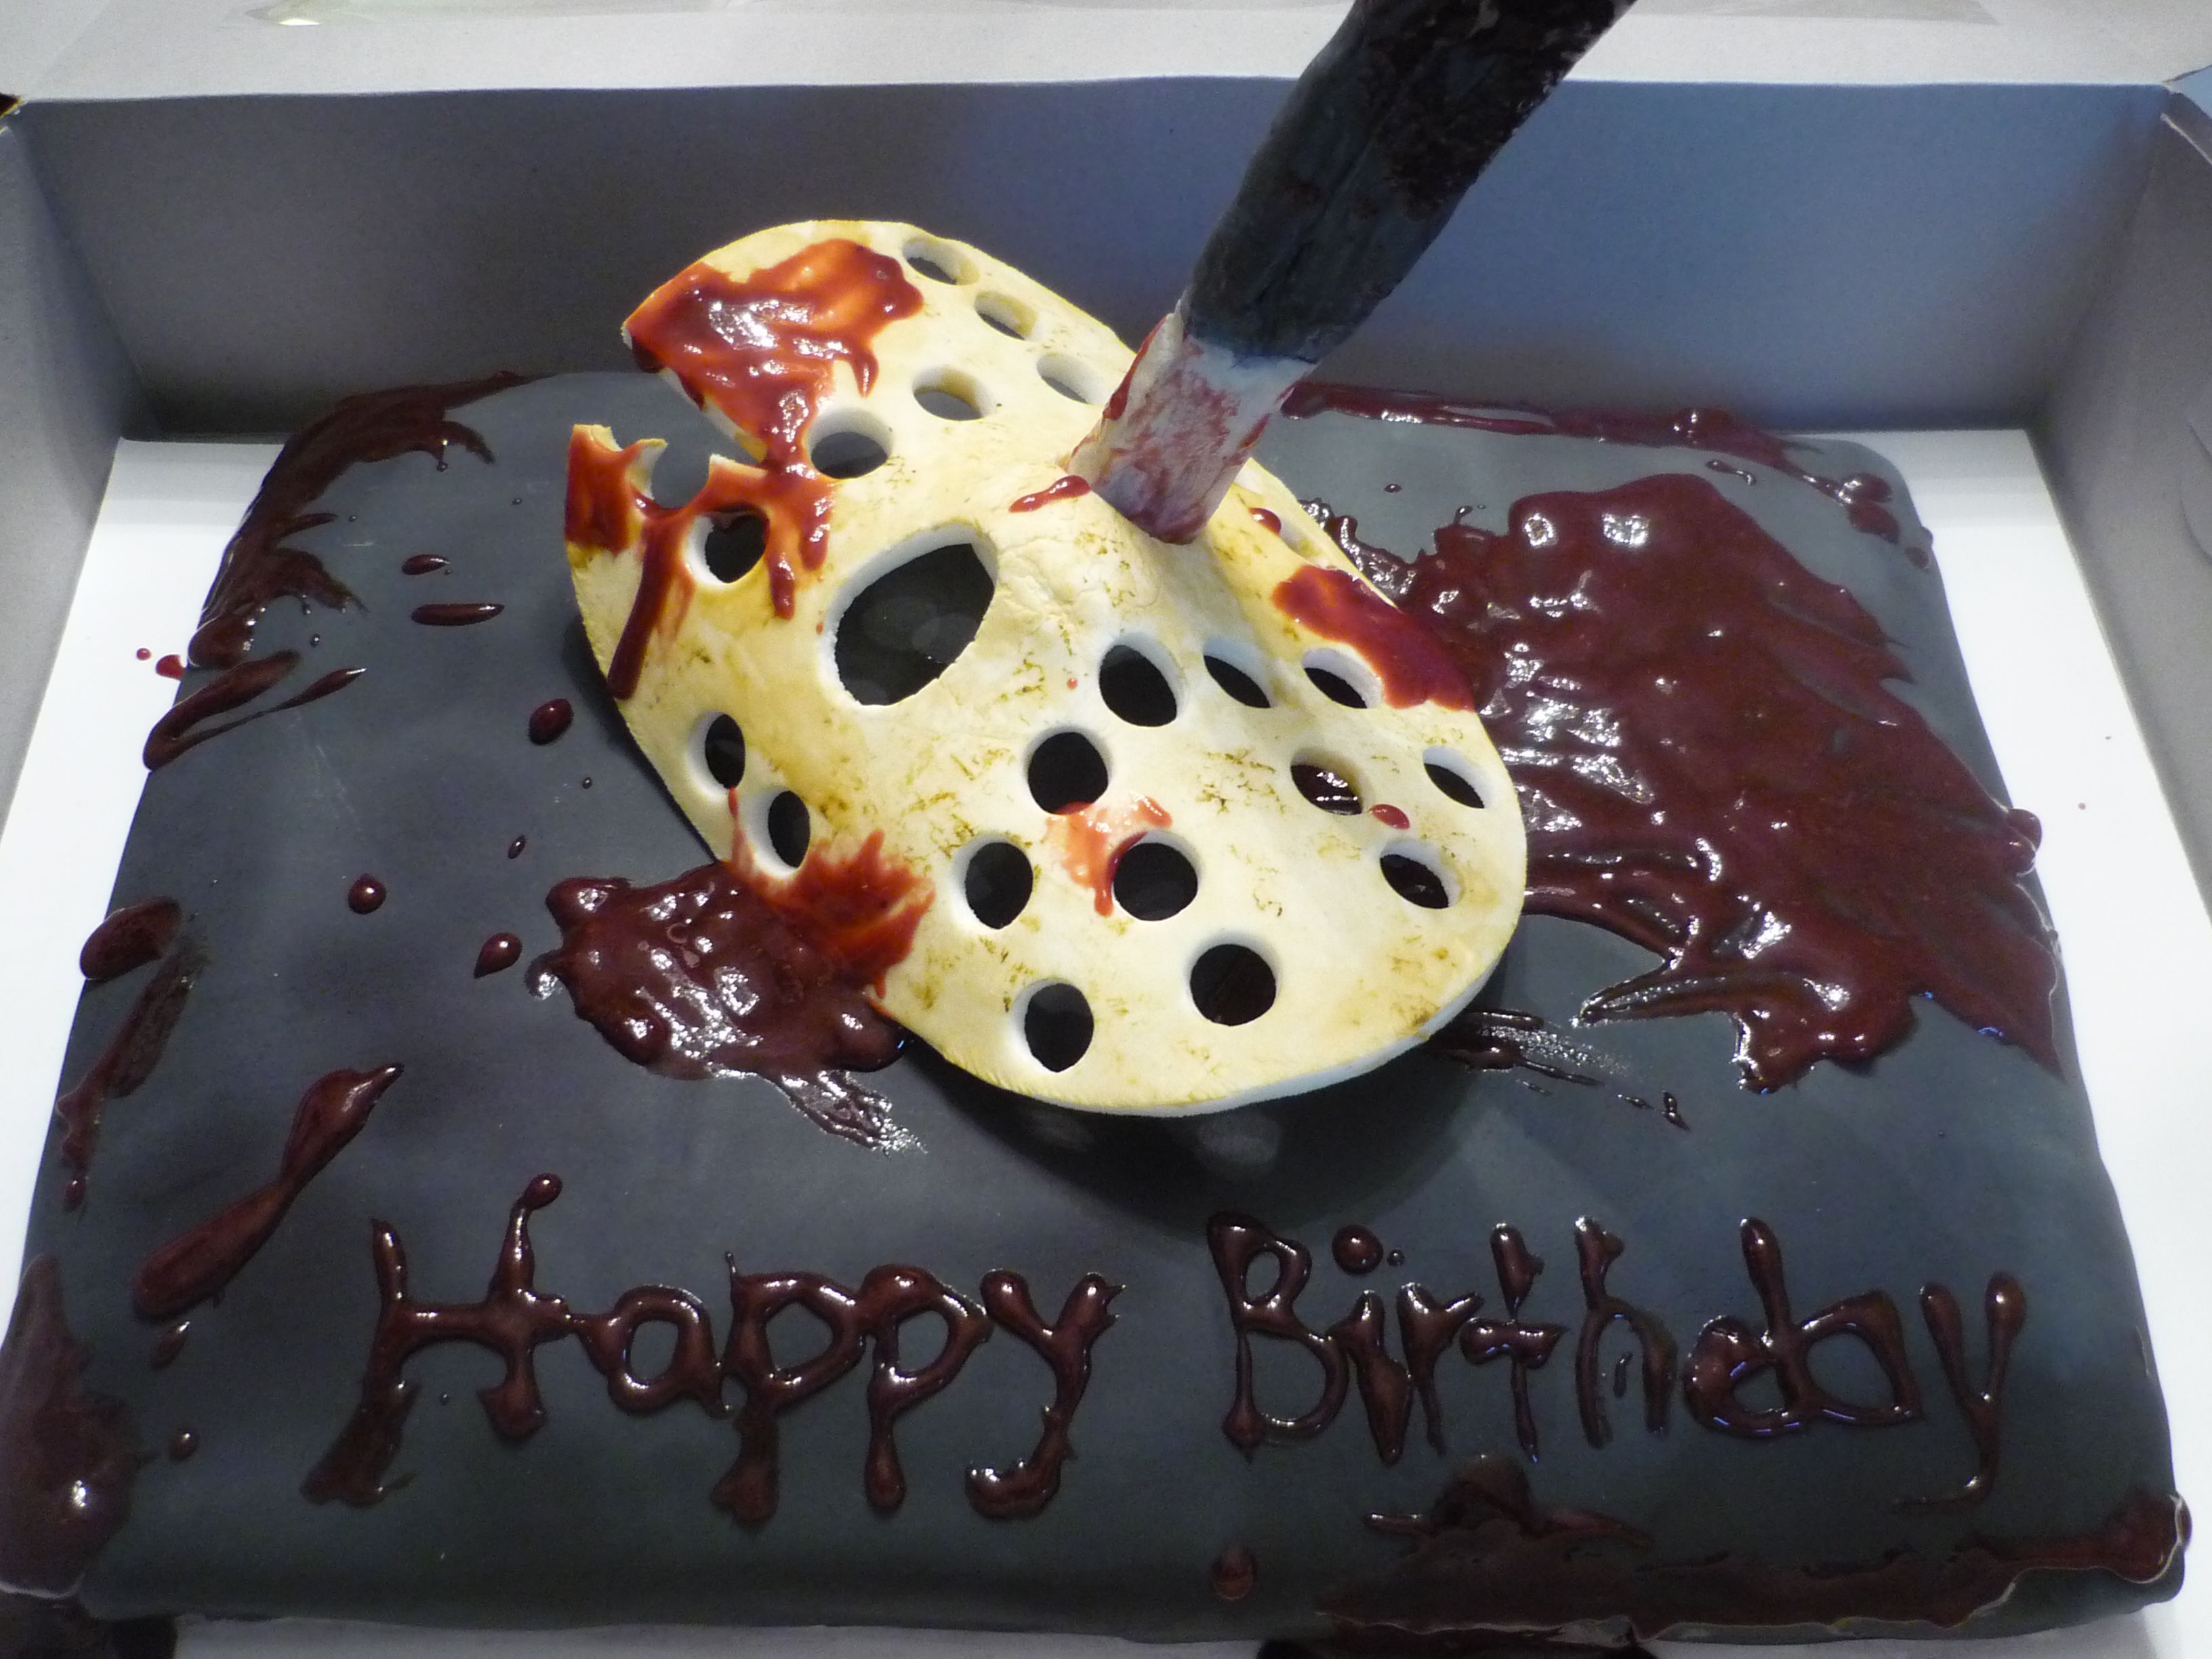 Friday the 13th horror cakes